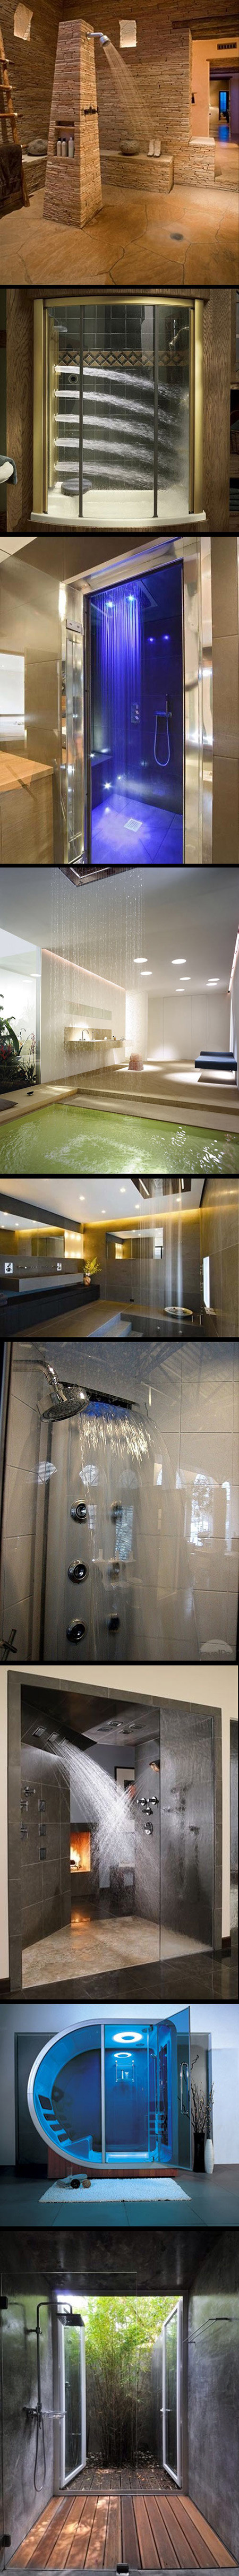 We Have Rounded Up Some Of The Coolest High Tech Showers That Geeks Would  Love